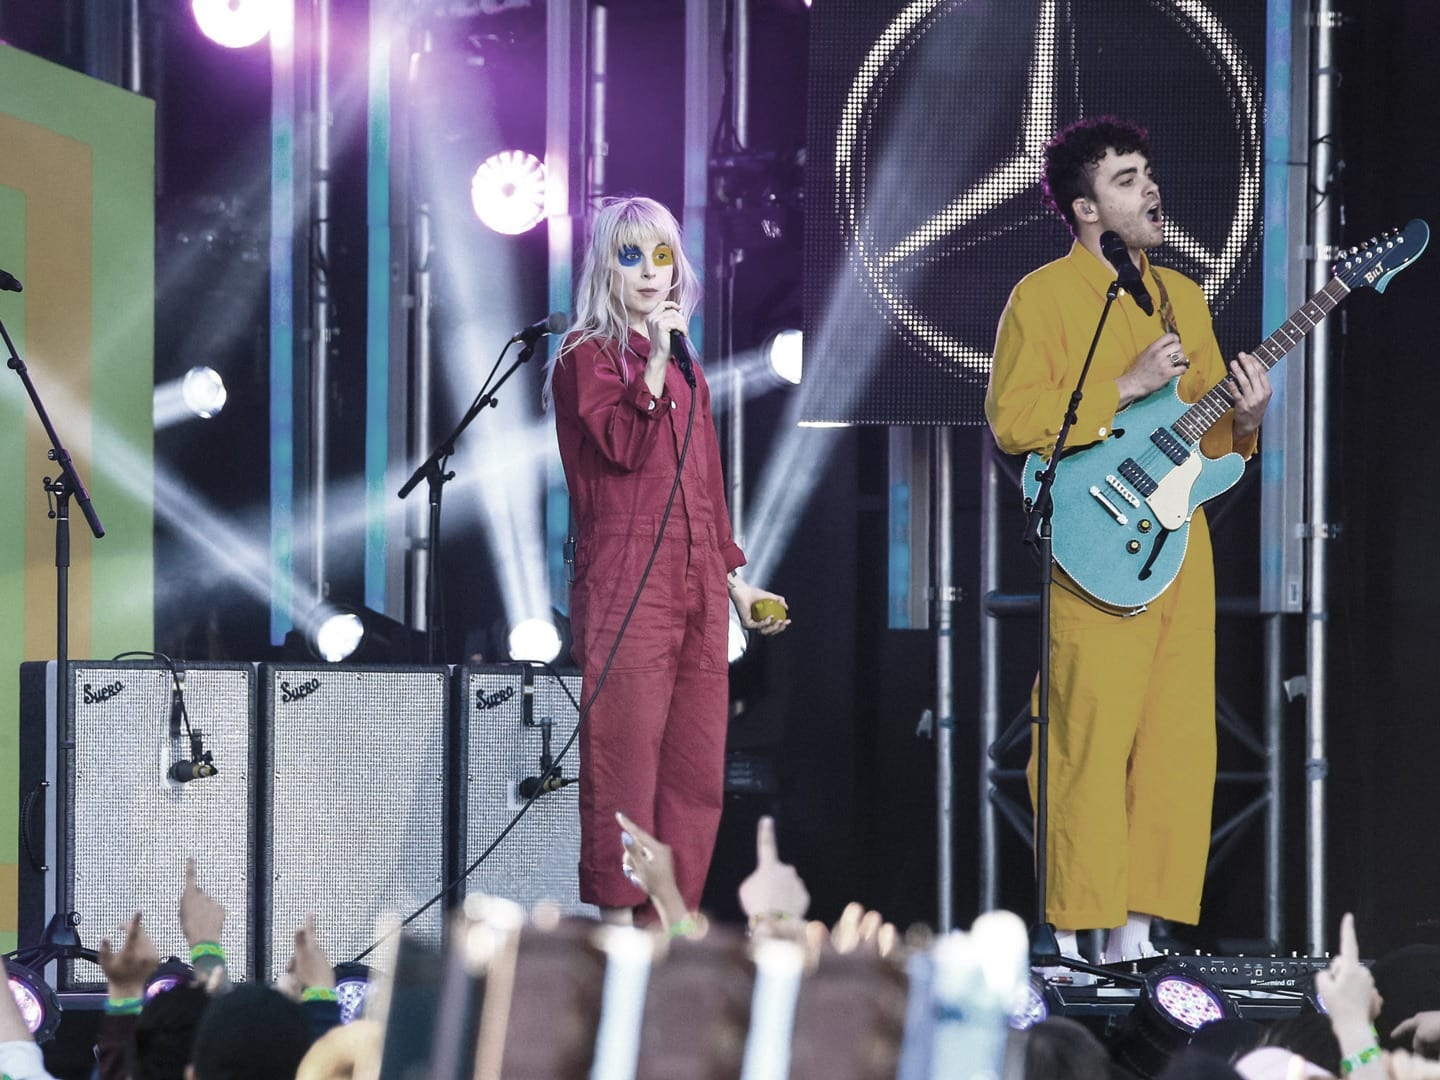 Paramore - Hard Times performance